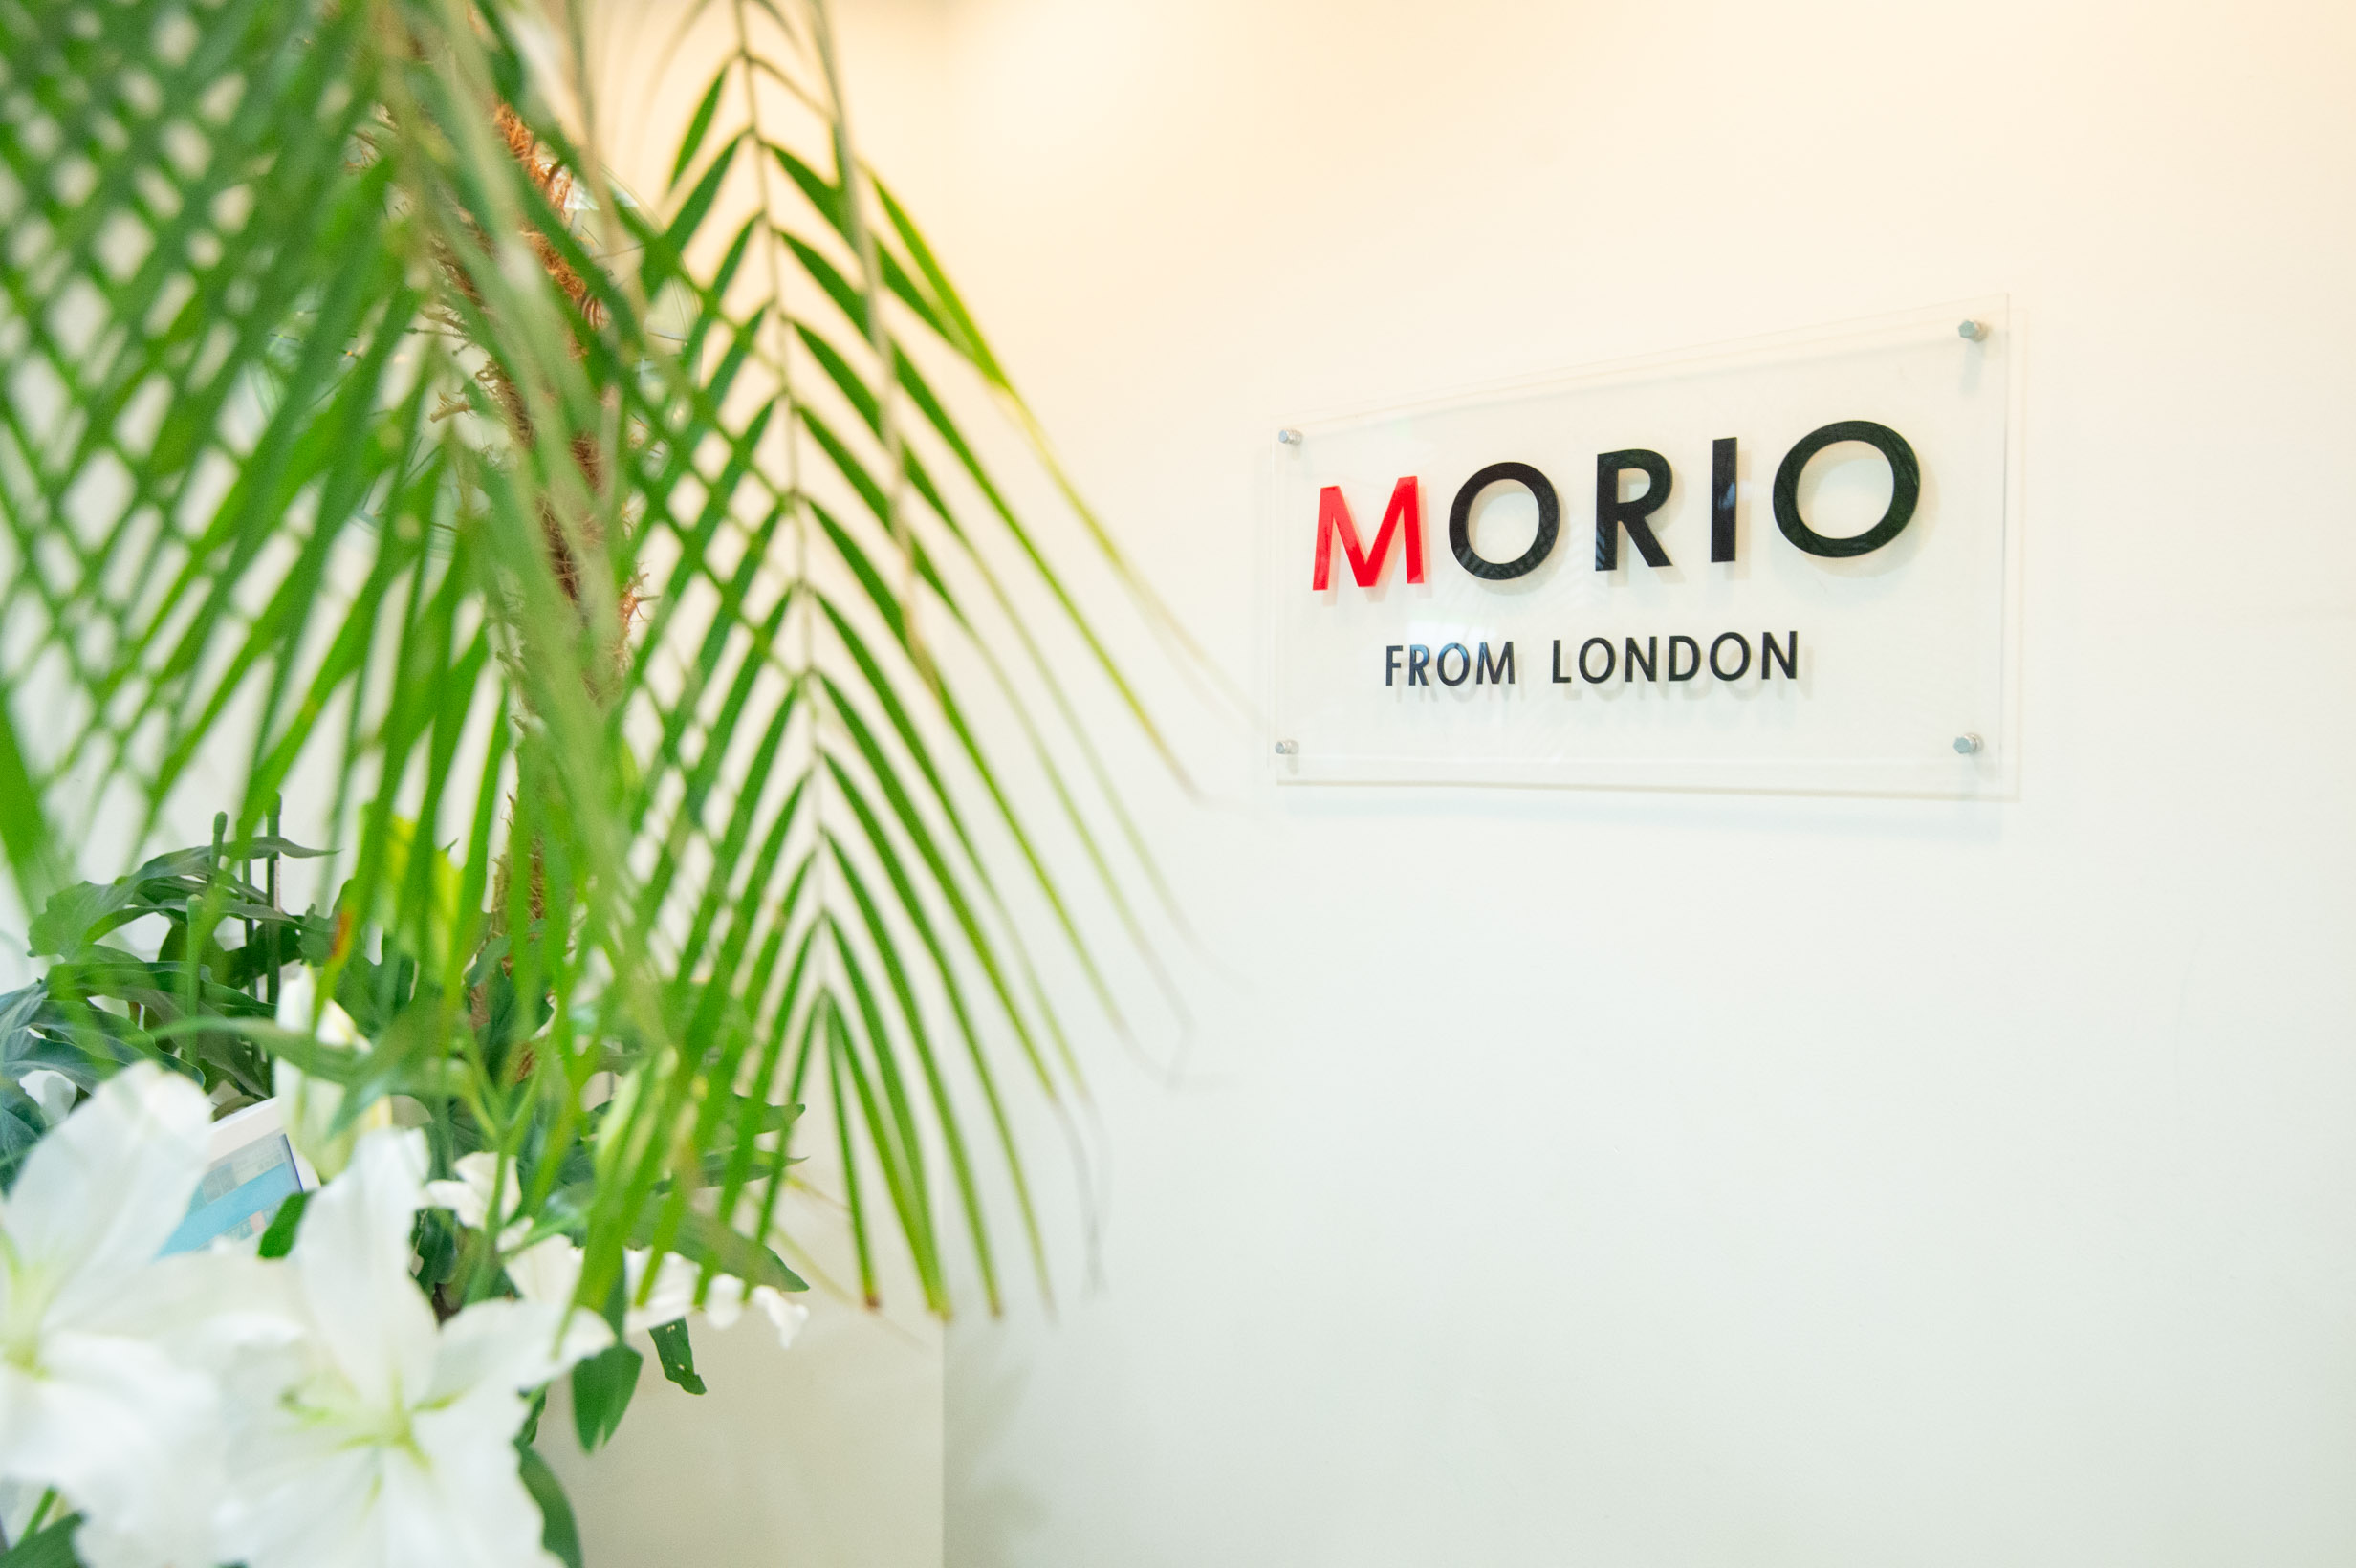 MORIO FROM LONDON 三軒茶屋